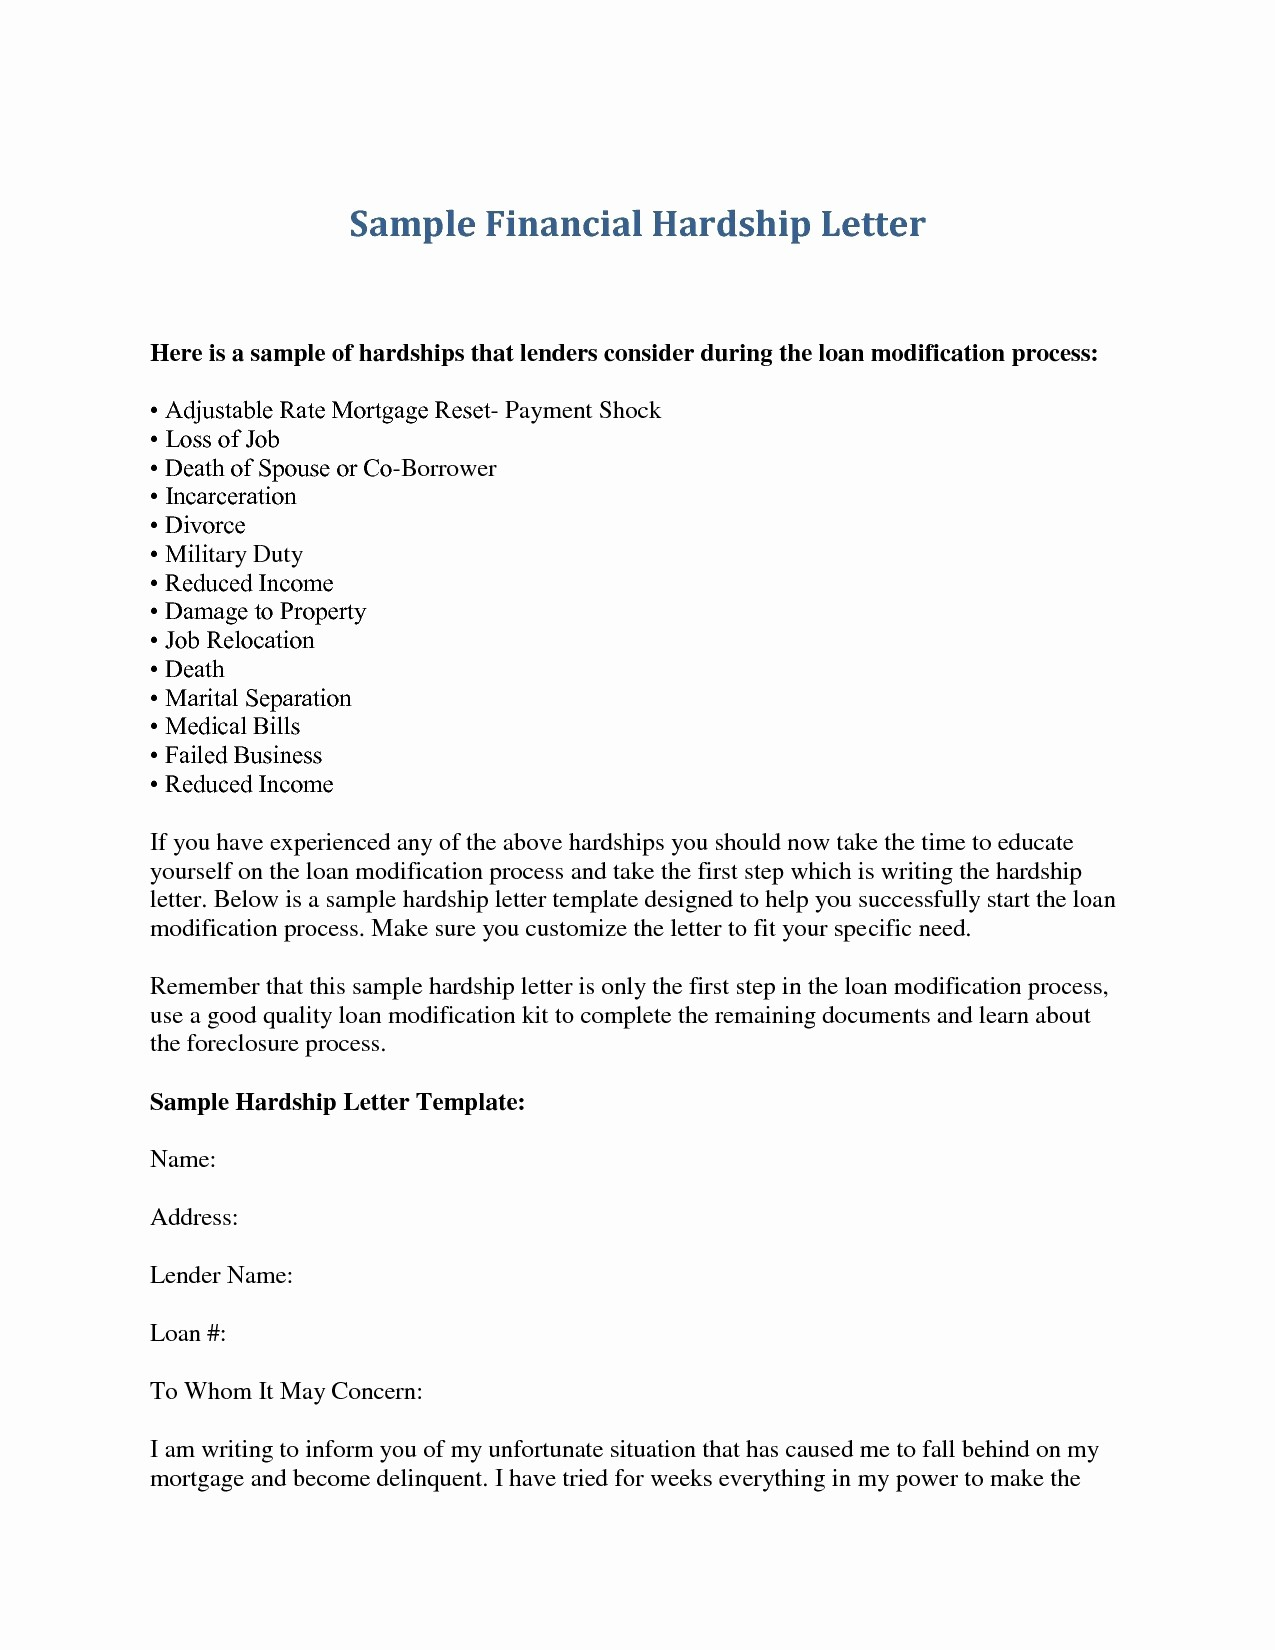 Medical Reference Letter Template - Sample Good Moral Character Letter for Medical School Archives